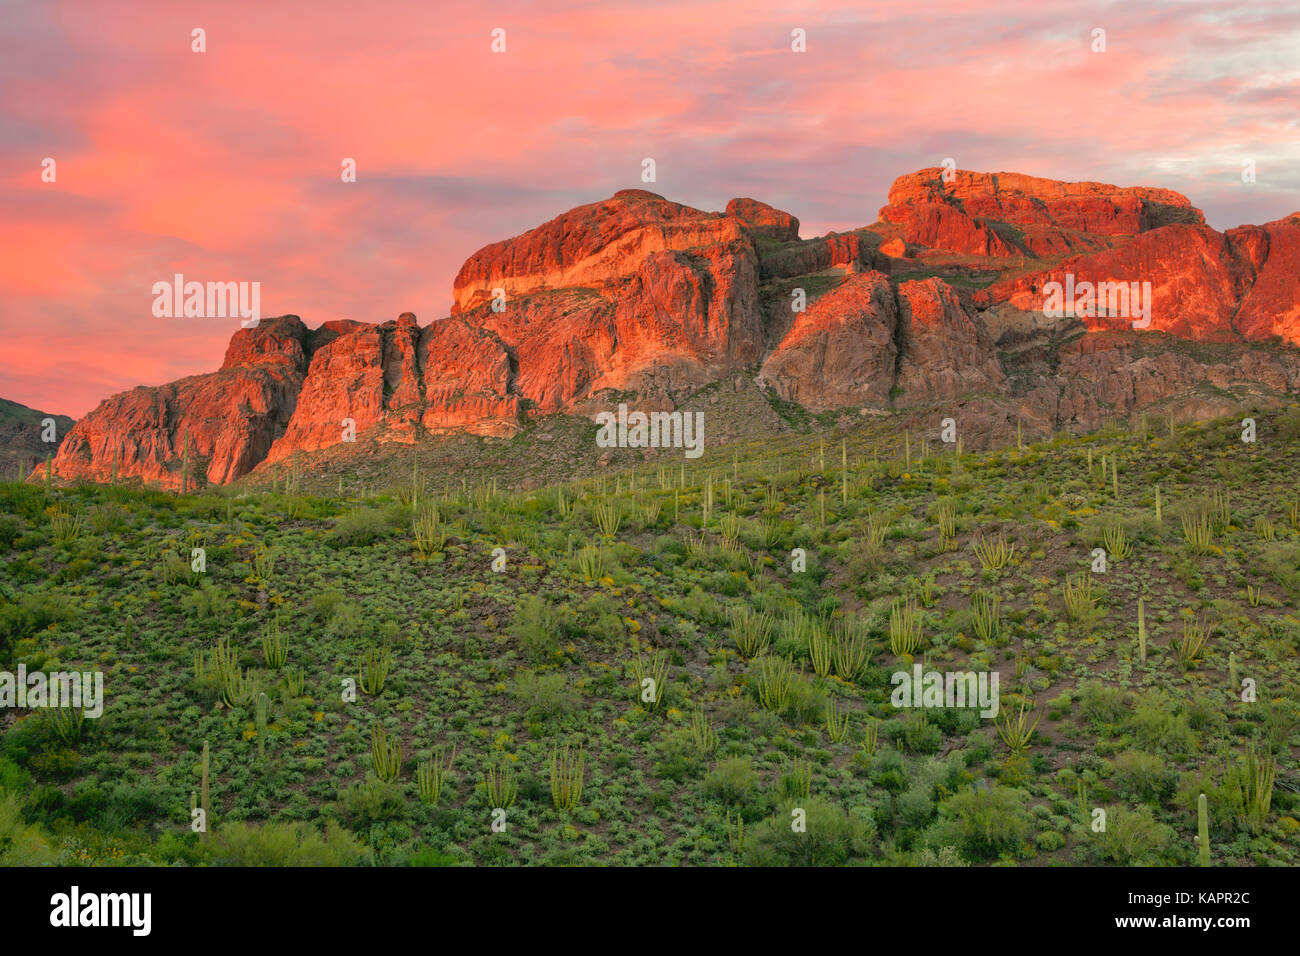 Sunset glow on the Ajo Mountain Range in Arizona's Organ Pipe Cactus National Monument. - Stock Image